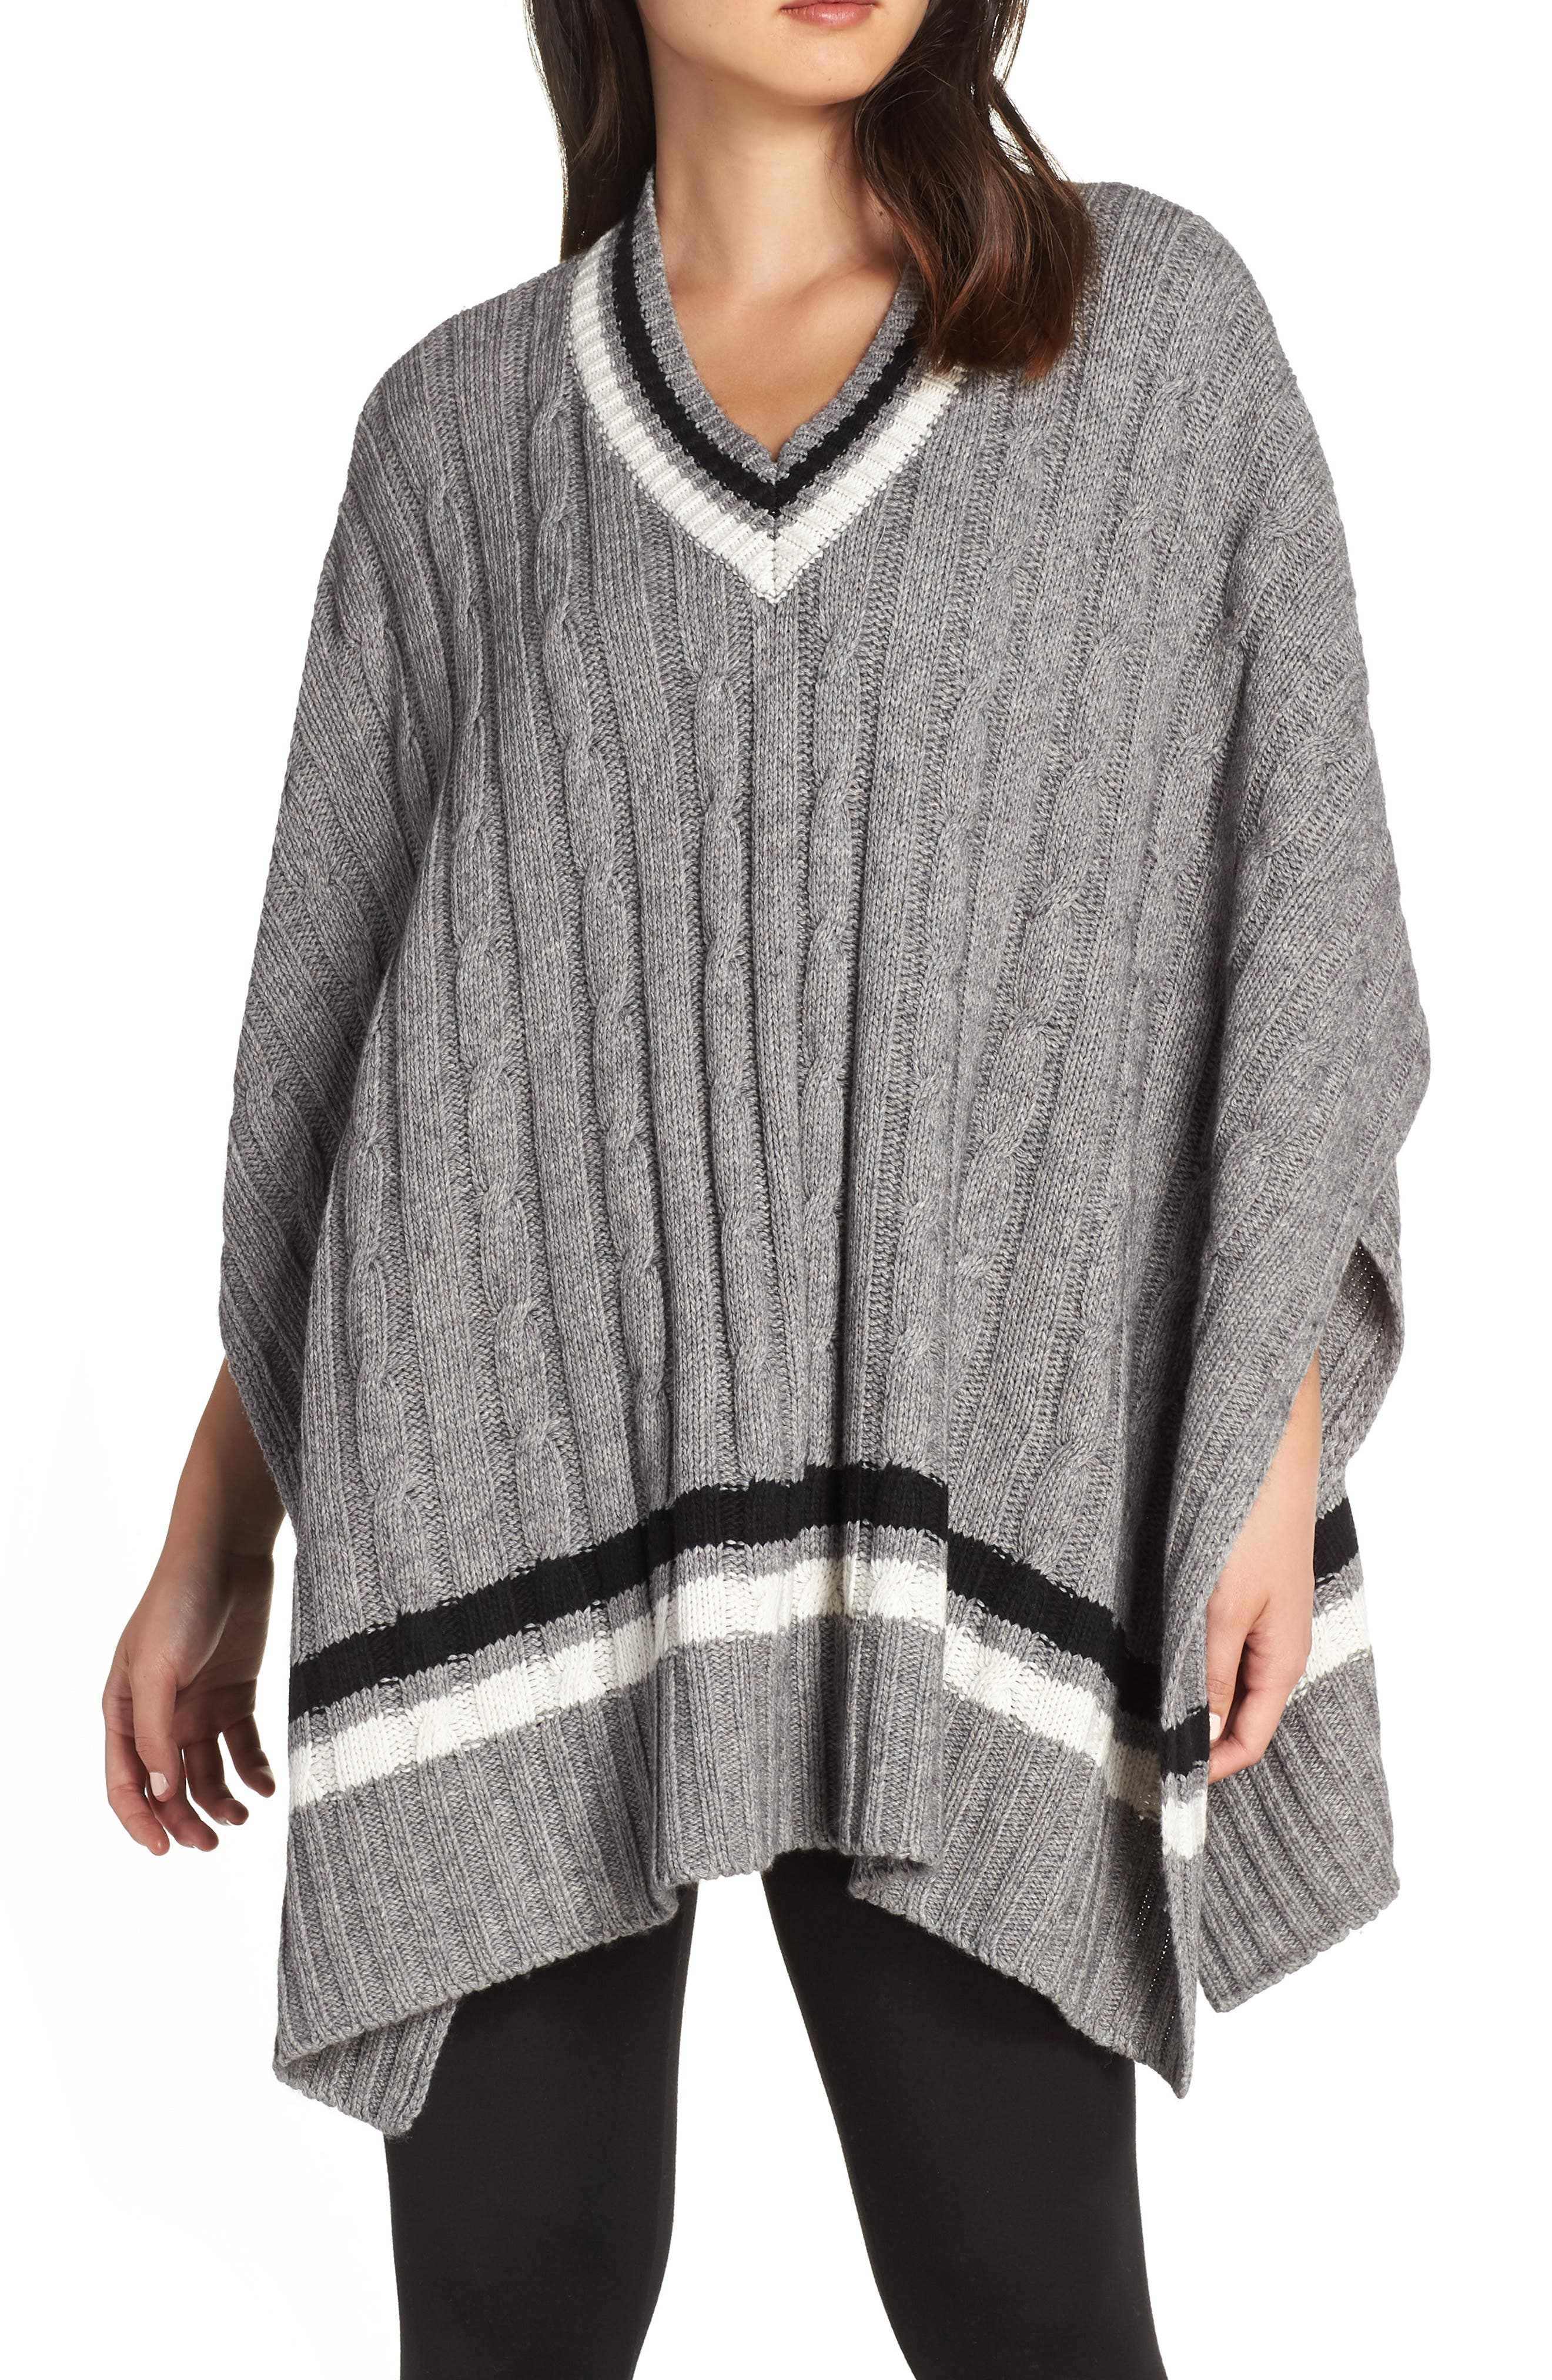 Weslynn Poncho Sweater,                             Main thumbnail 1, color,                             GREY HEATHER